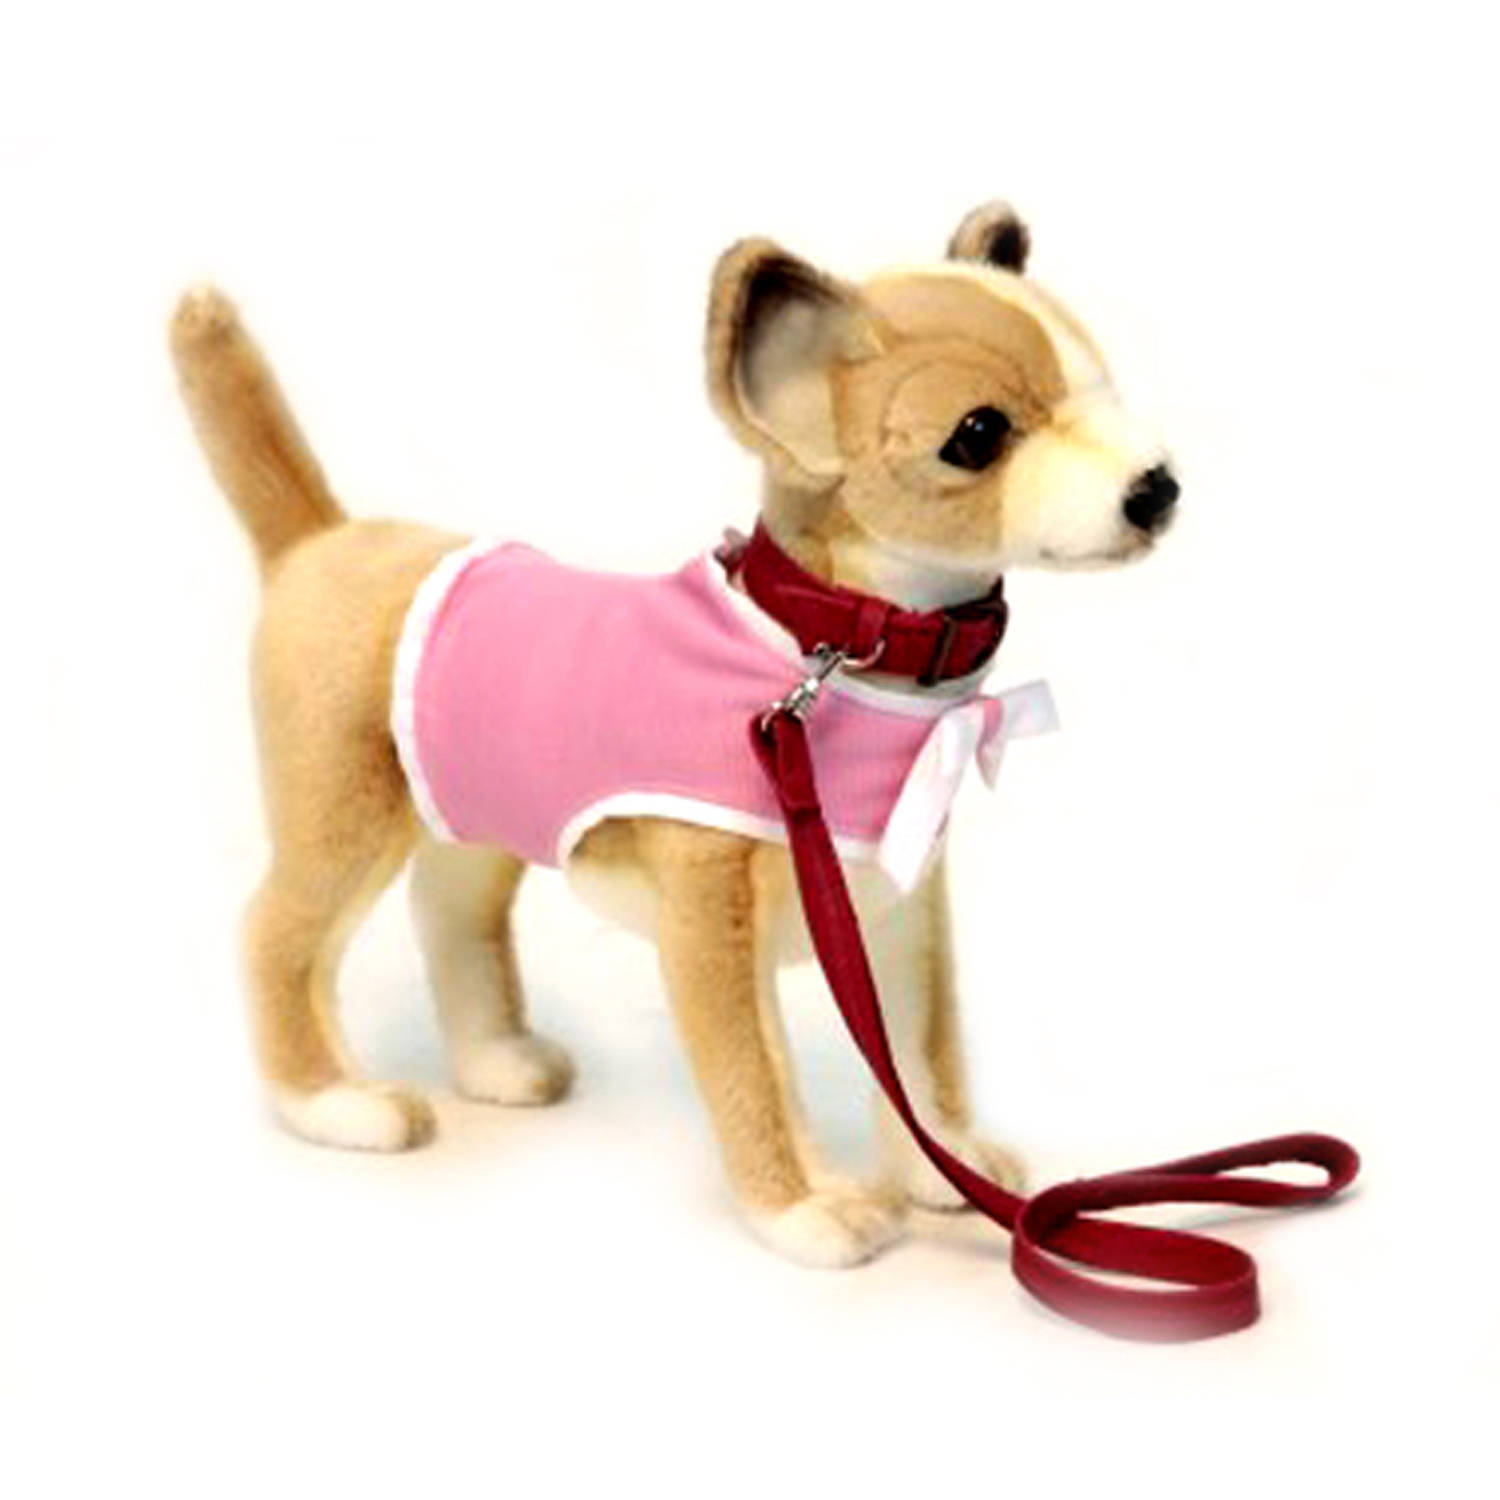 Hansa Chihuahua With Pink Coat And Leash Plush Toy Walmart Com